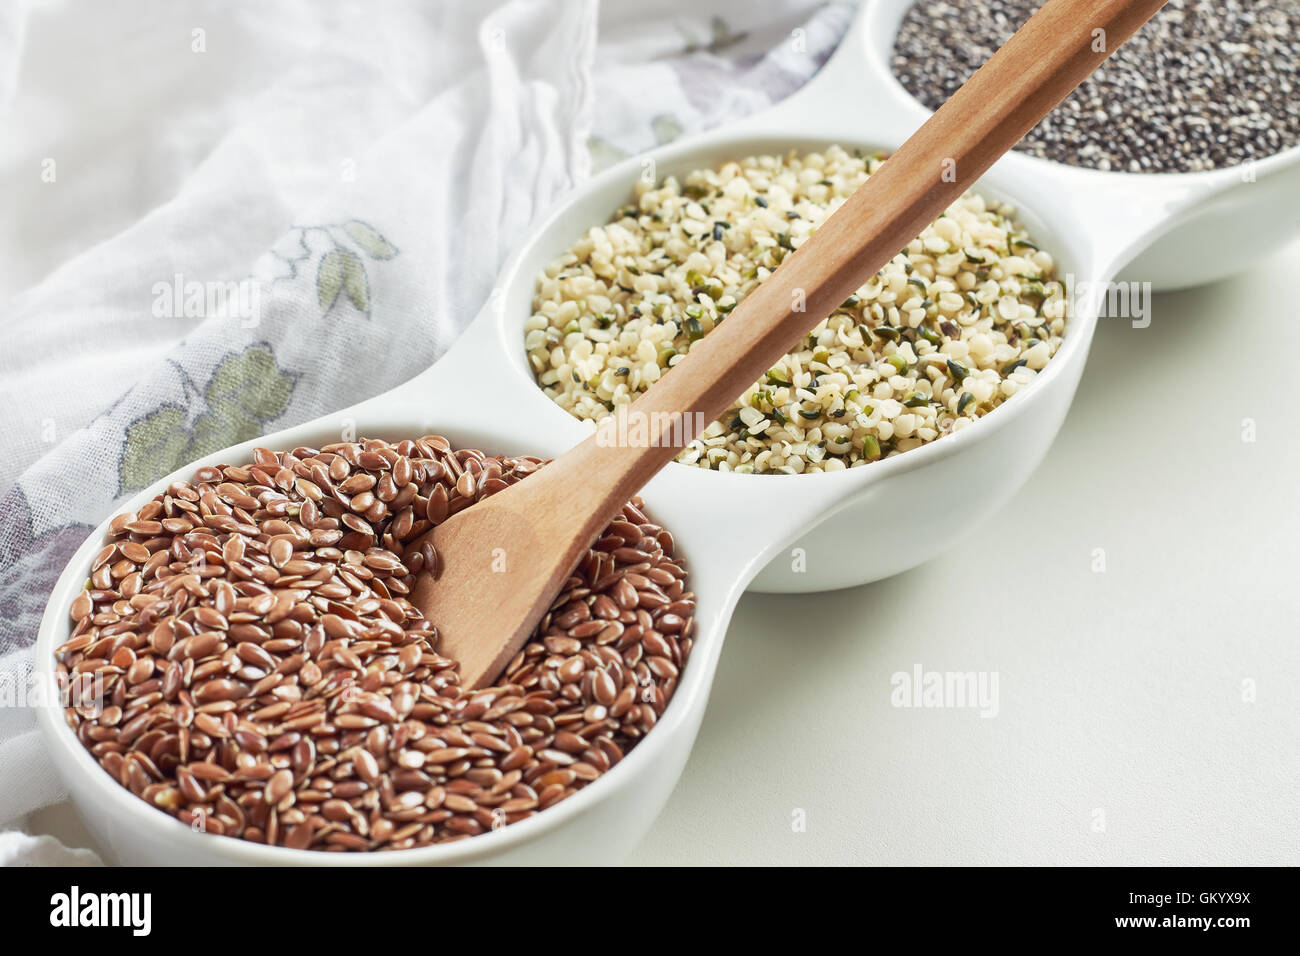 Flax, hemp and chia seeds in bowl on white background. Vegan sources of Omega-3 - Stock Image